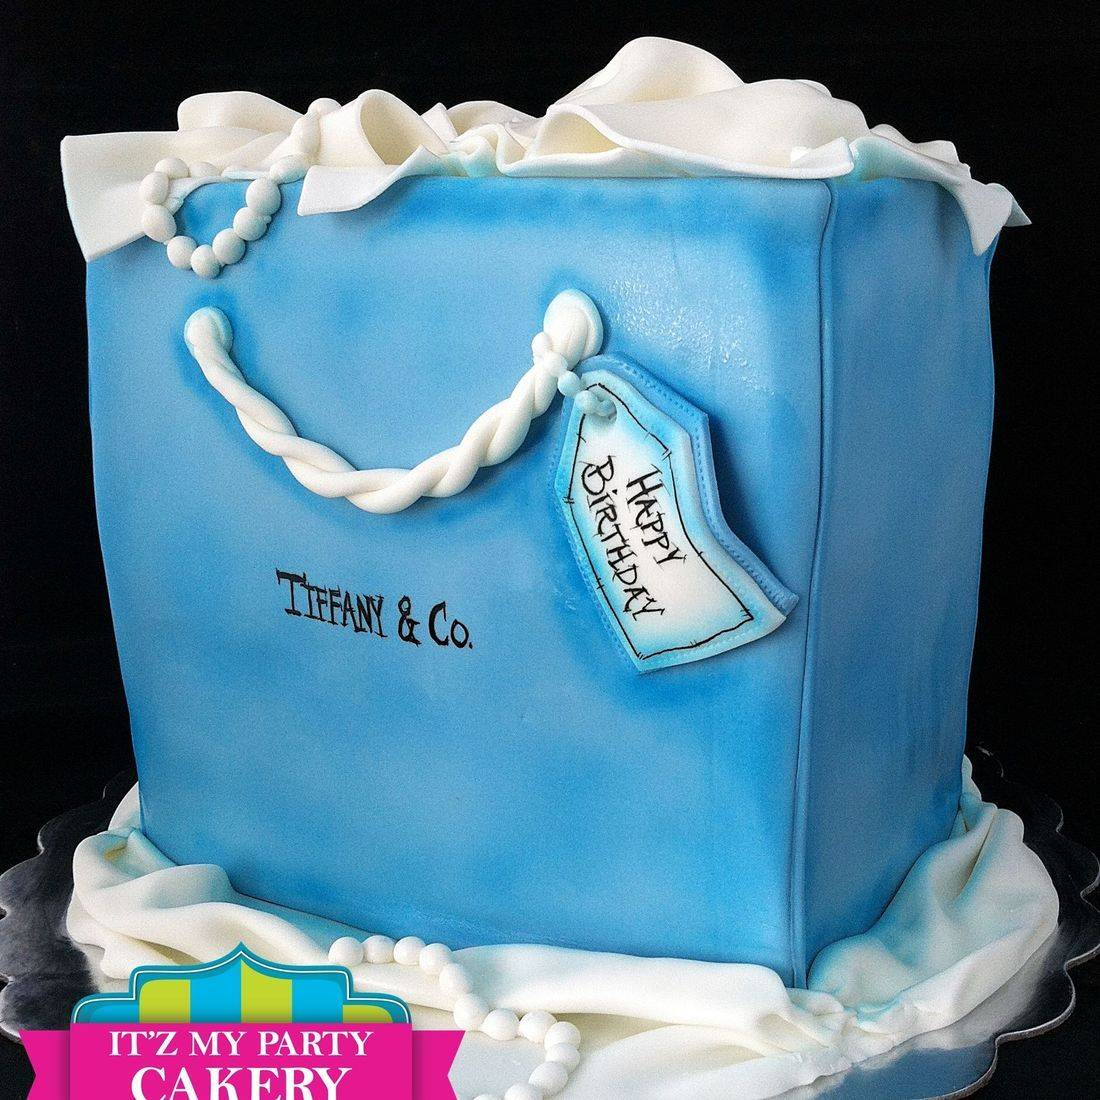 Tiffany Bag Cake Dimensional Cake Milwaukee